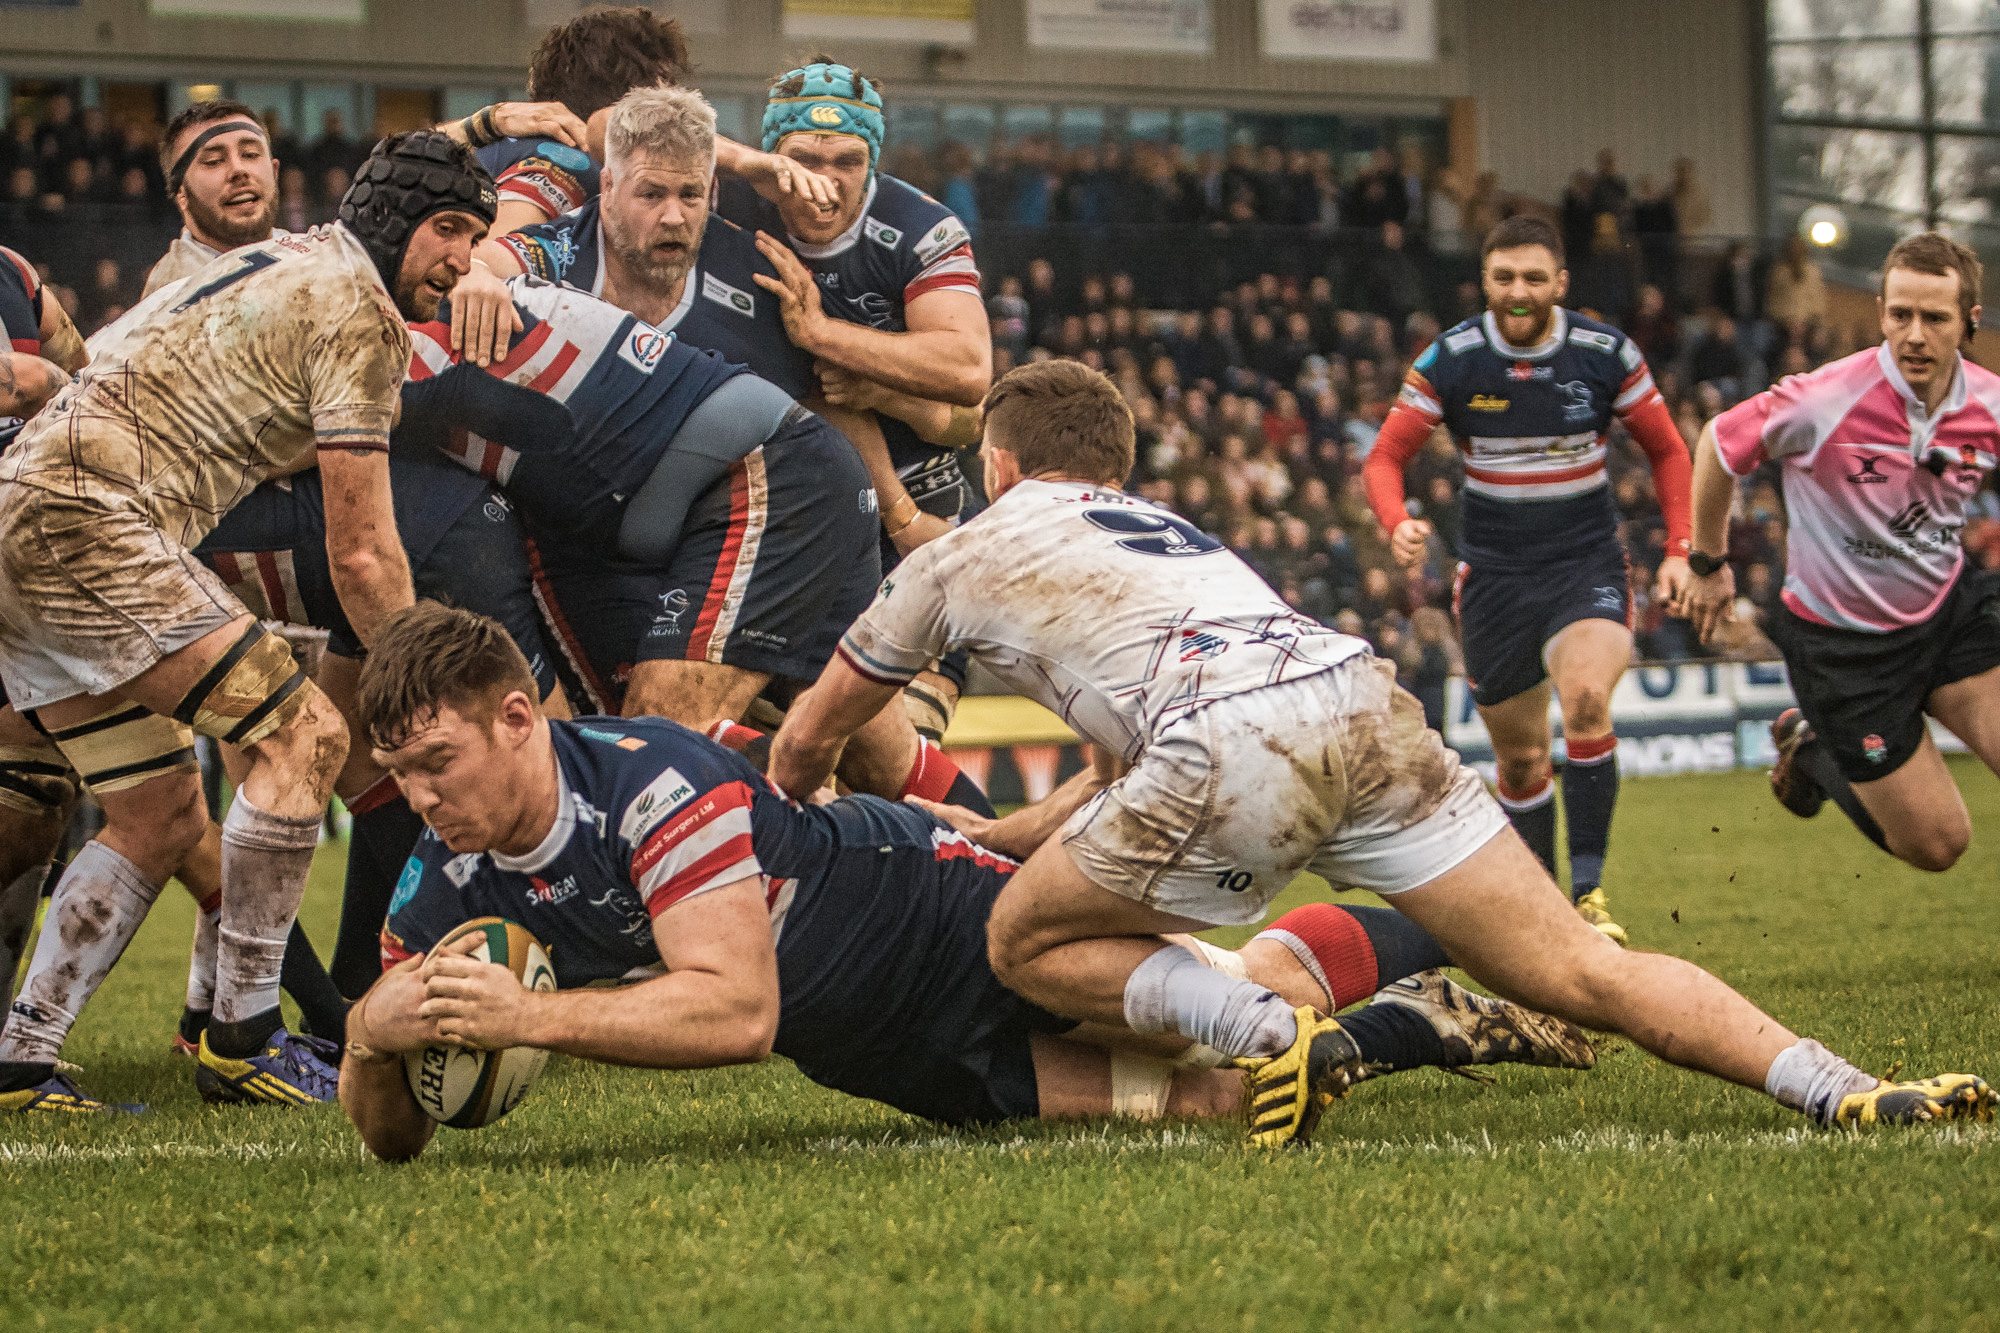 Taken in January 2016 against Rotherham Titans, this was one of my favourite shots of Ollie Stedman in his previous spell at Doncaster Knights